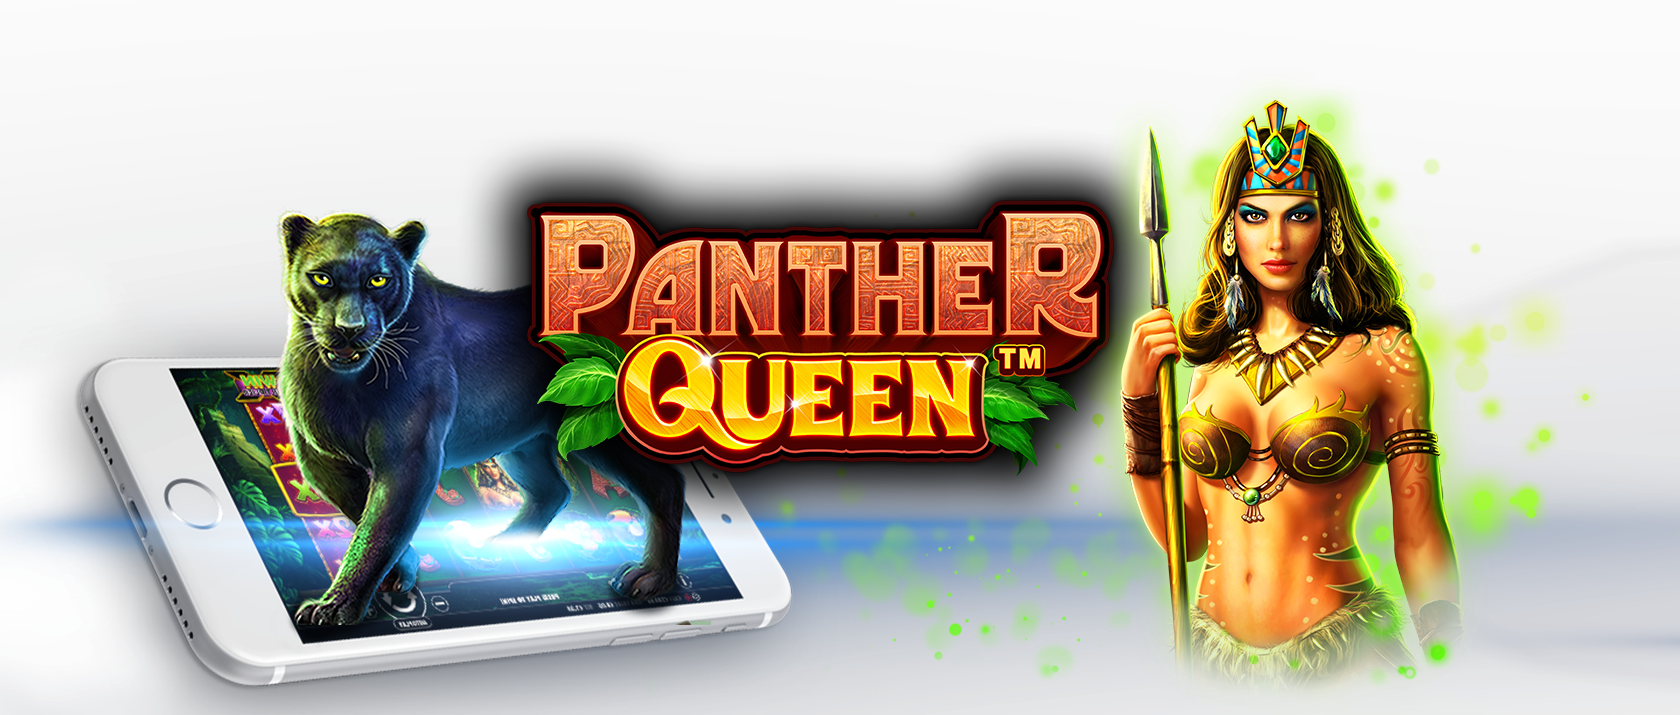 panther queen slots game logo